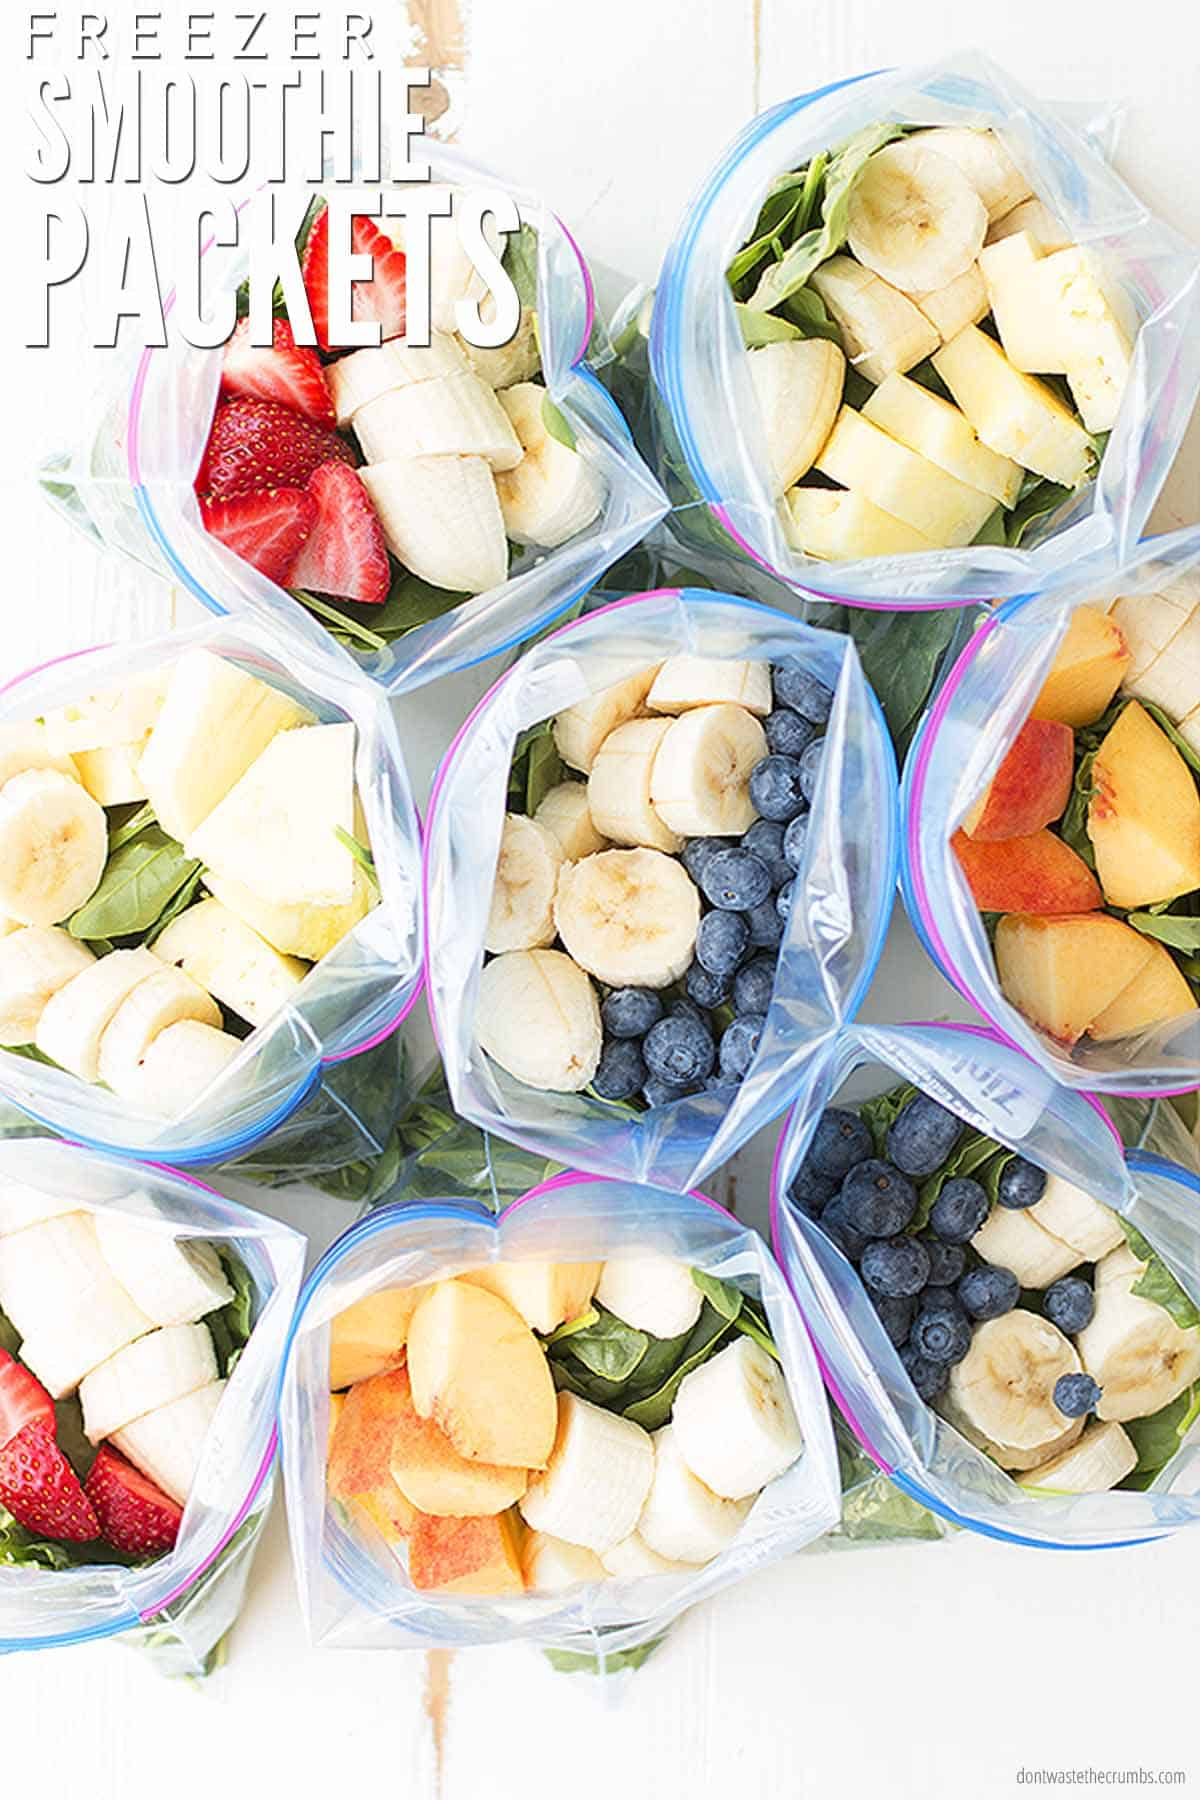 Eight freezer bags with mixed fresh fruits and vegetables, like strawberries, blueberries, bananas, mangoes, and greens like spinach and kale. They are ready to be frozen into freezer smoothie packs. The text overlay reads, 'Freezer Smoothie Packs.""